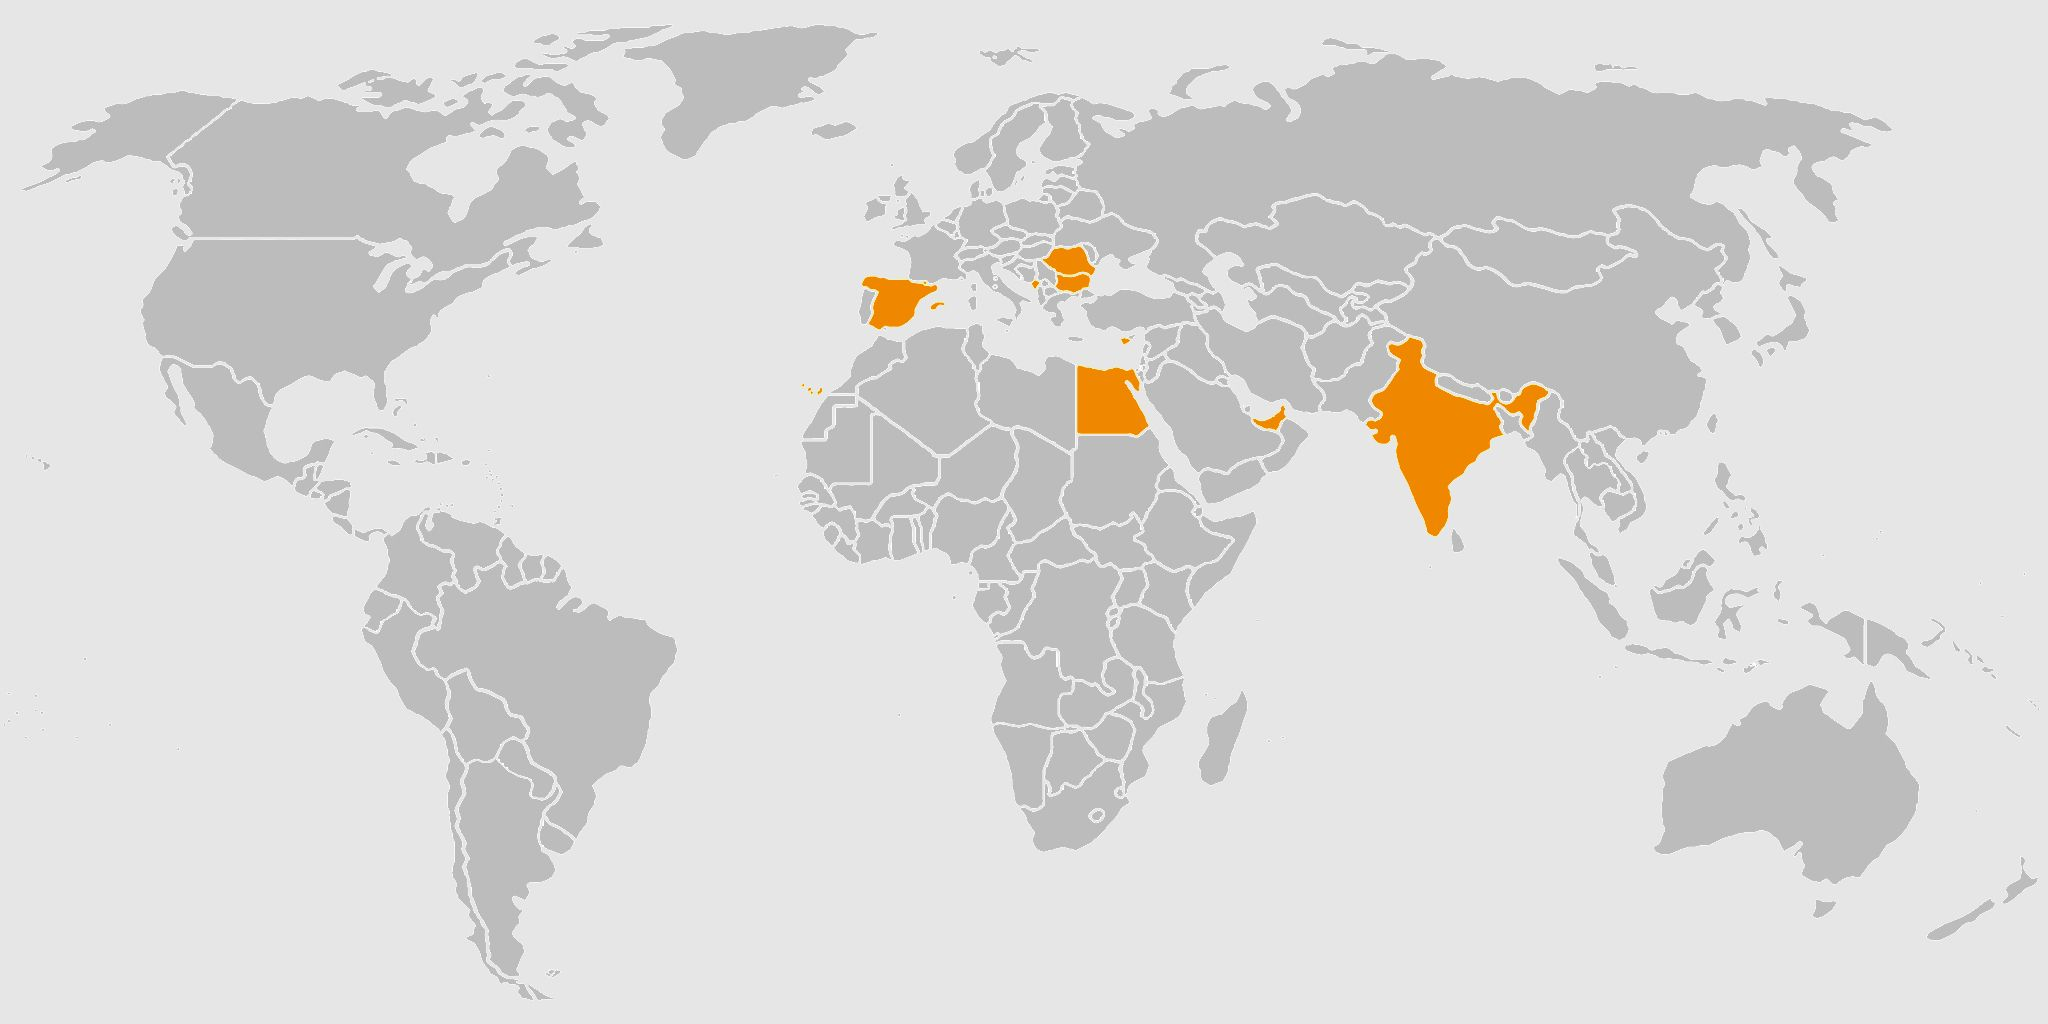 Ive visited 3 of all countries in the world beenapp beenapp ive visited 3 of all countries in the world beenapp gumiabroncs Choice Image